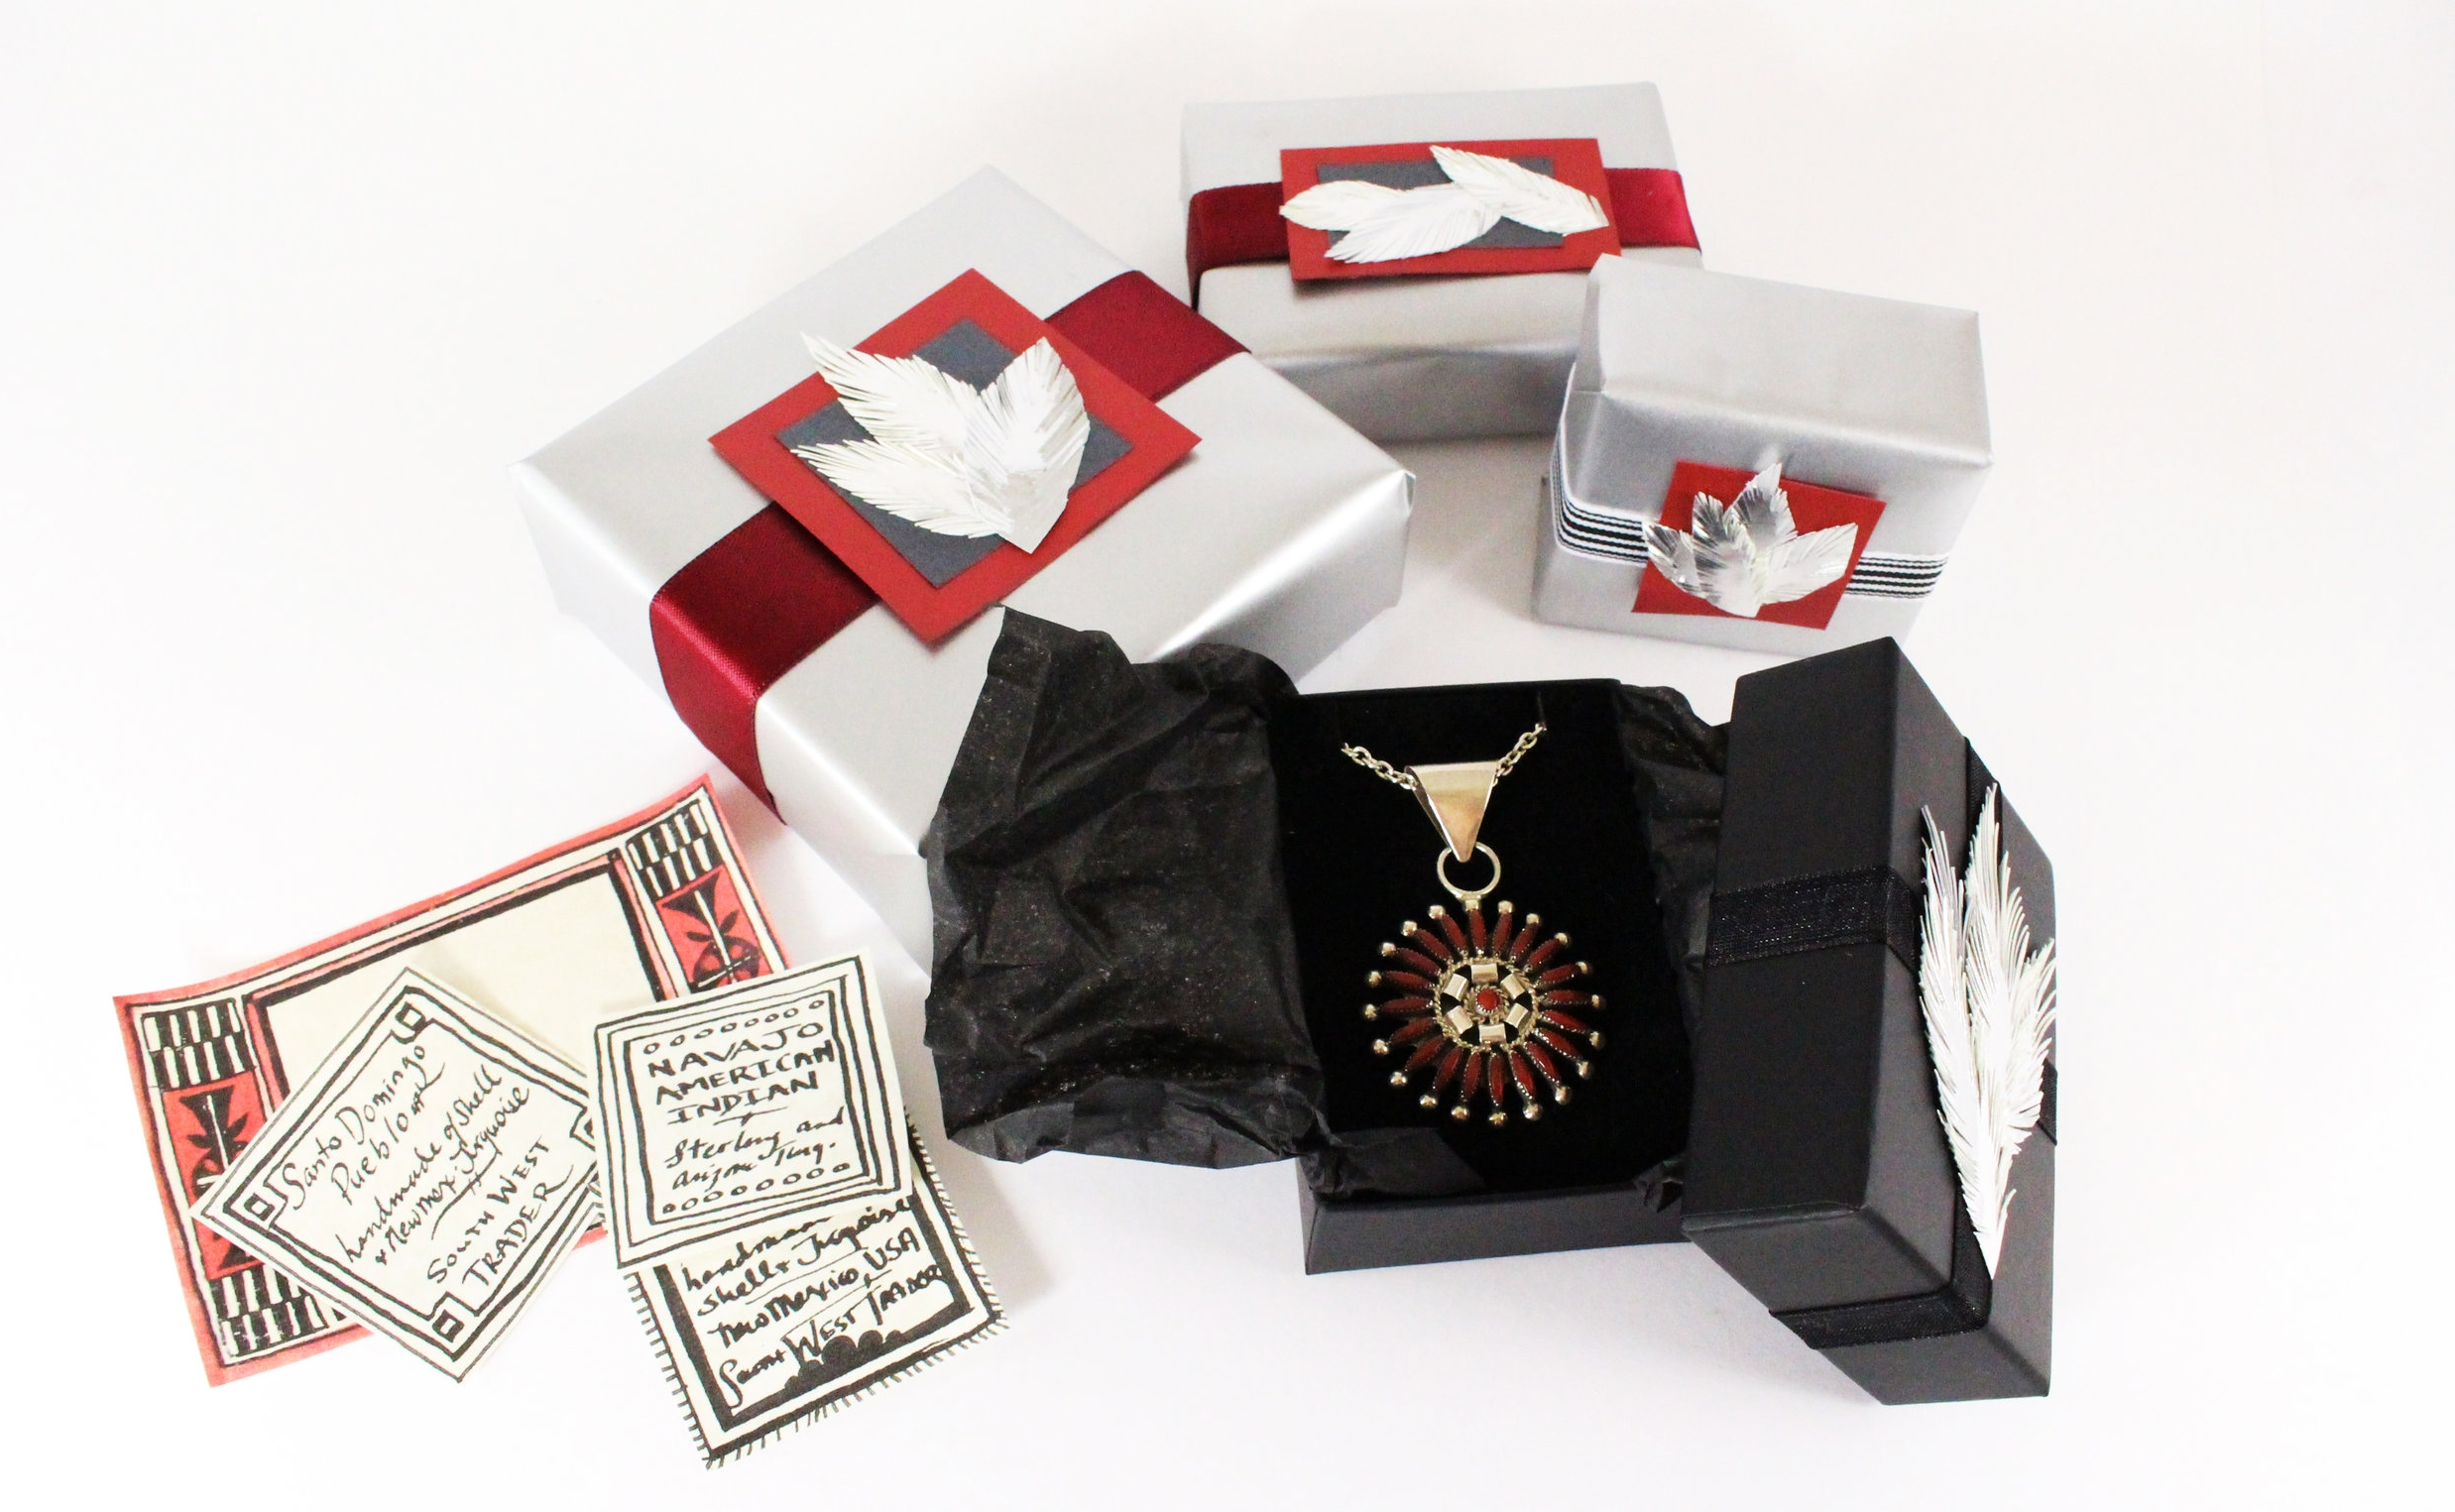 - All of our online jewellery purchases are boxed and gift wrapped in store, featuring our signature handmade details and embellishments.